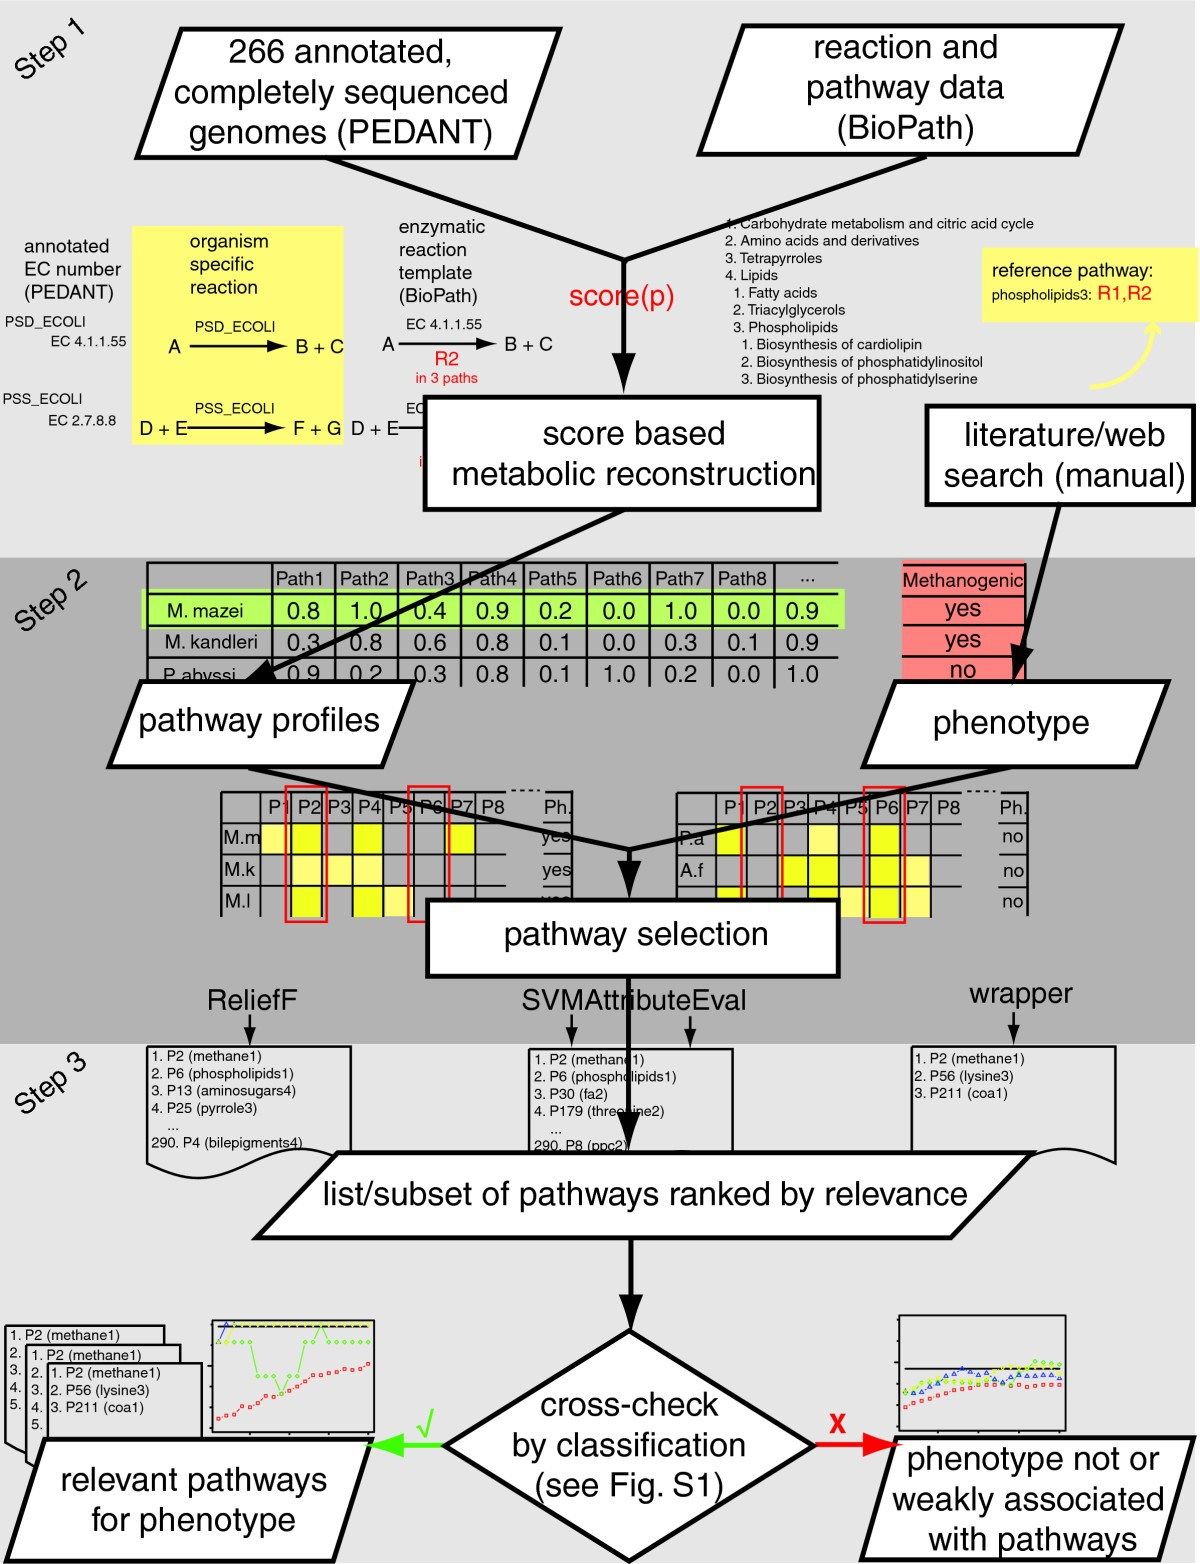 Uncovering metabolic pathways relevant to phenotypic traits of